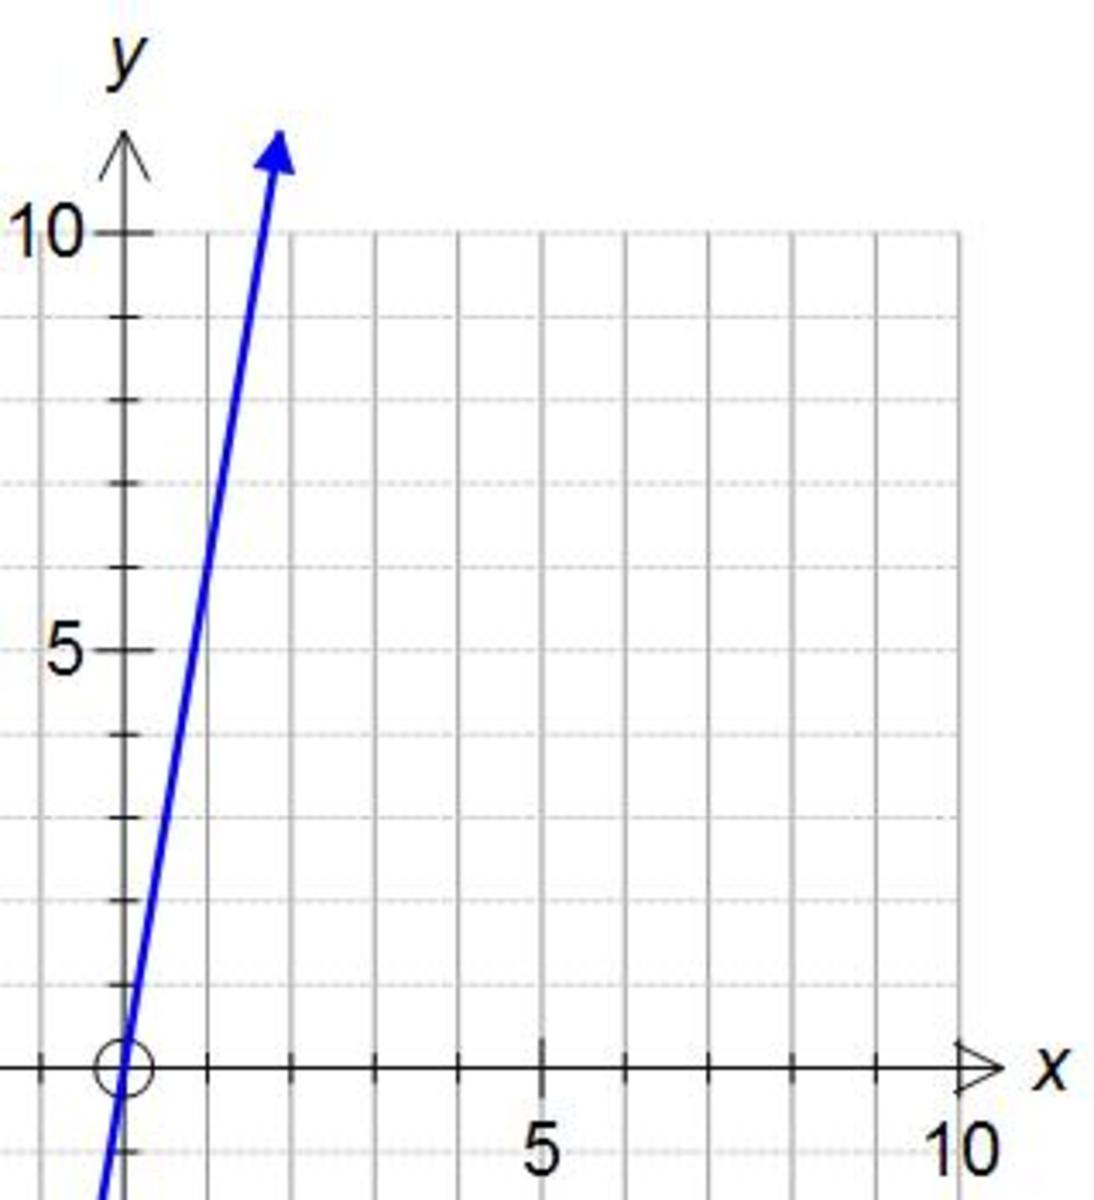 direct-proportion-how-to-write-down-a-formula-if-y-is-directly-proportional-to-x-maths-gcse